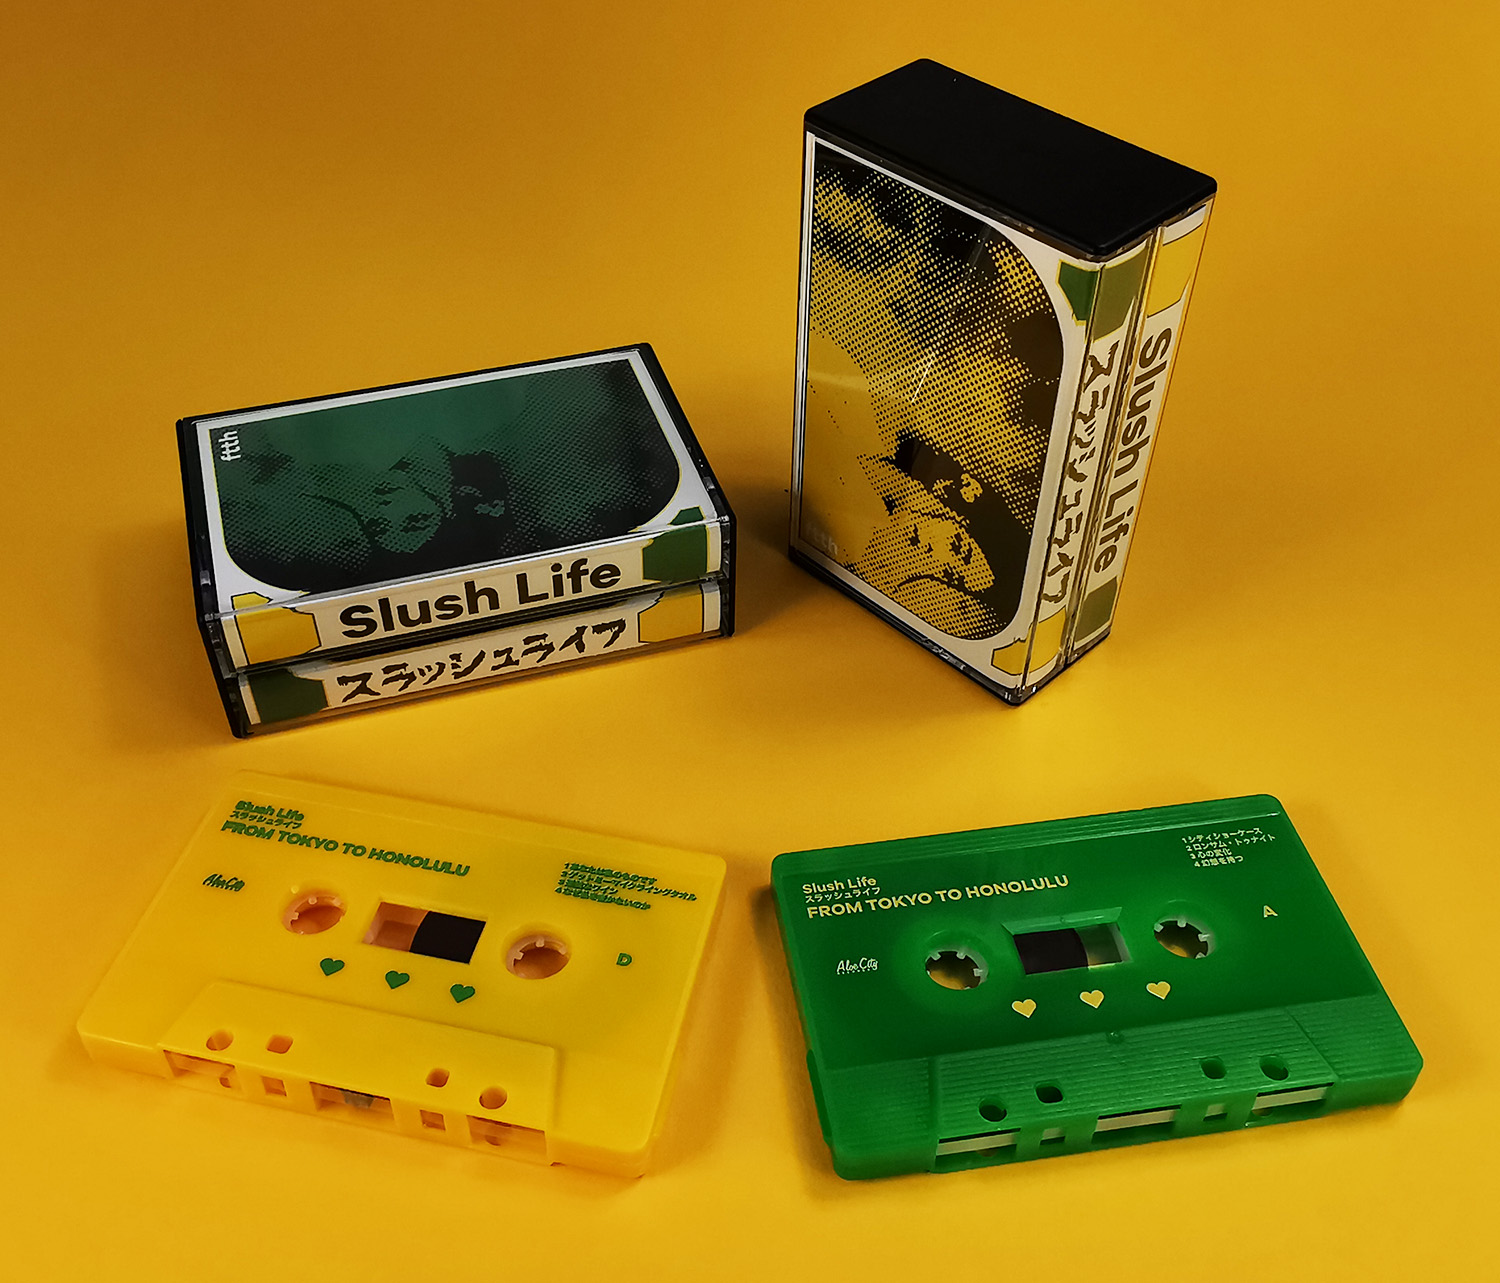 Double butterfly cassette tape set with yellow and green tape shells with on-body printing